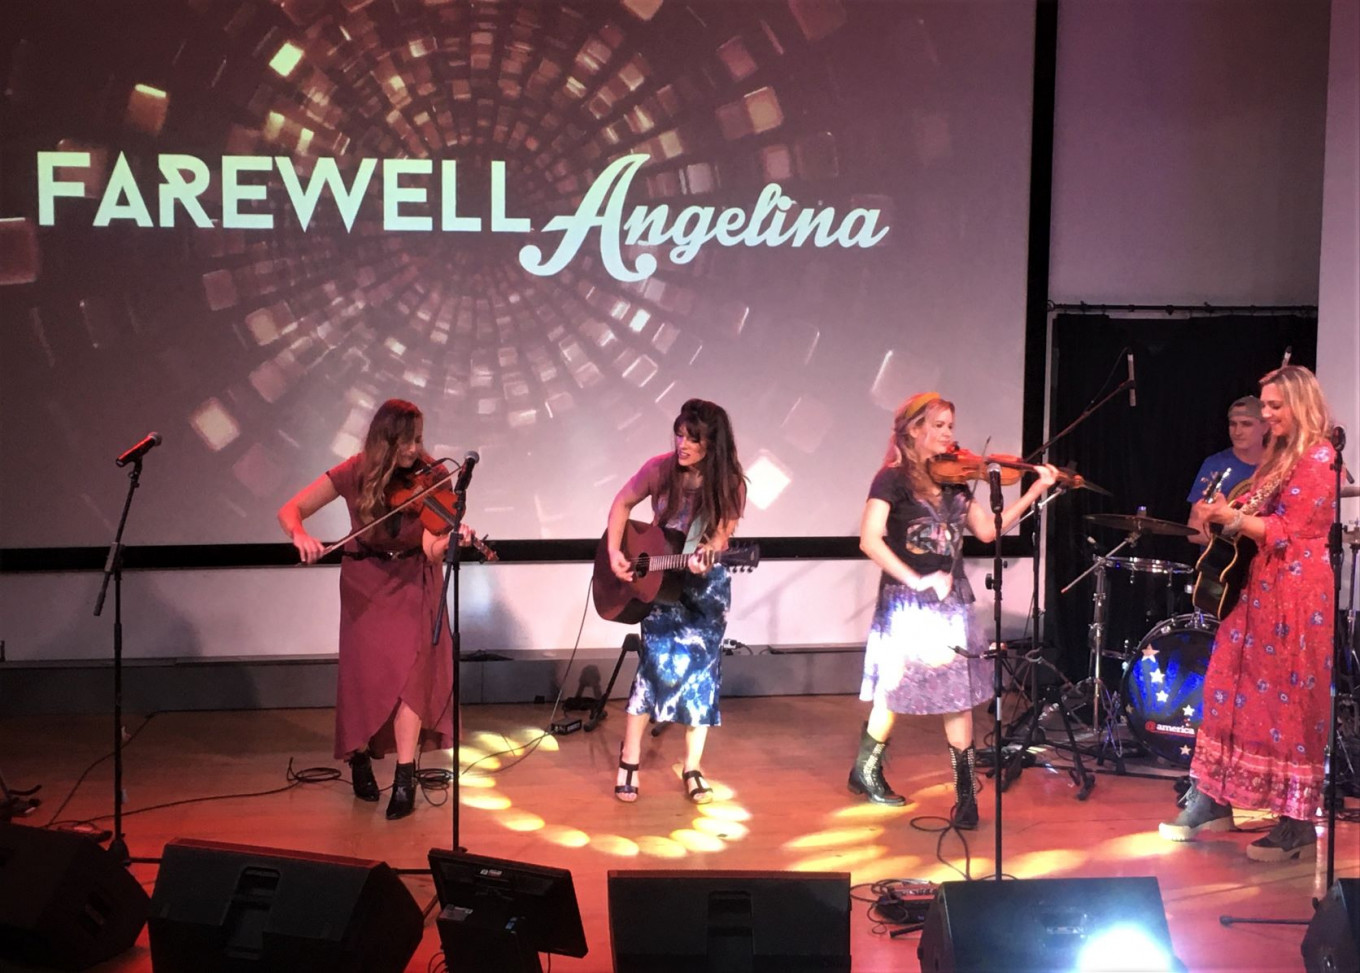 Stronger together: Farewell Angelina charms Jakarta with country sounds